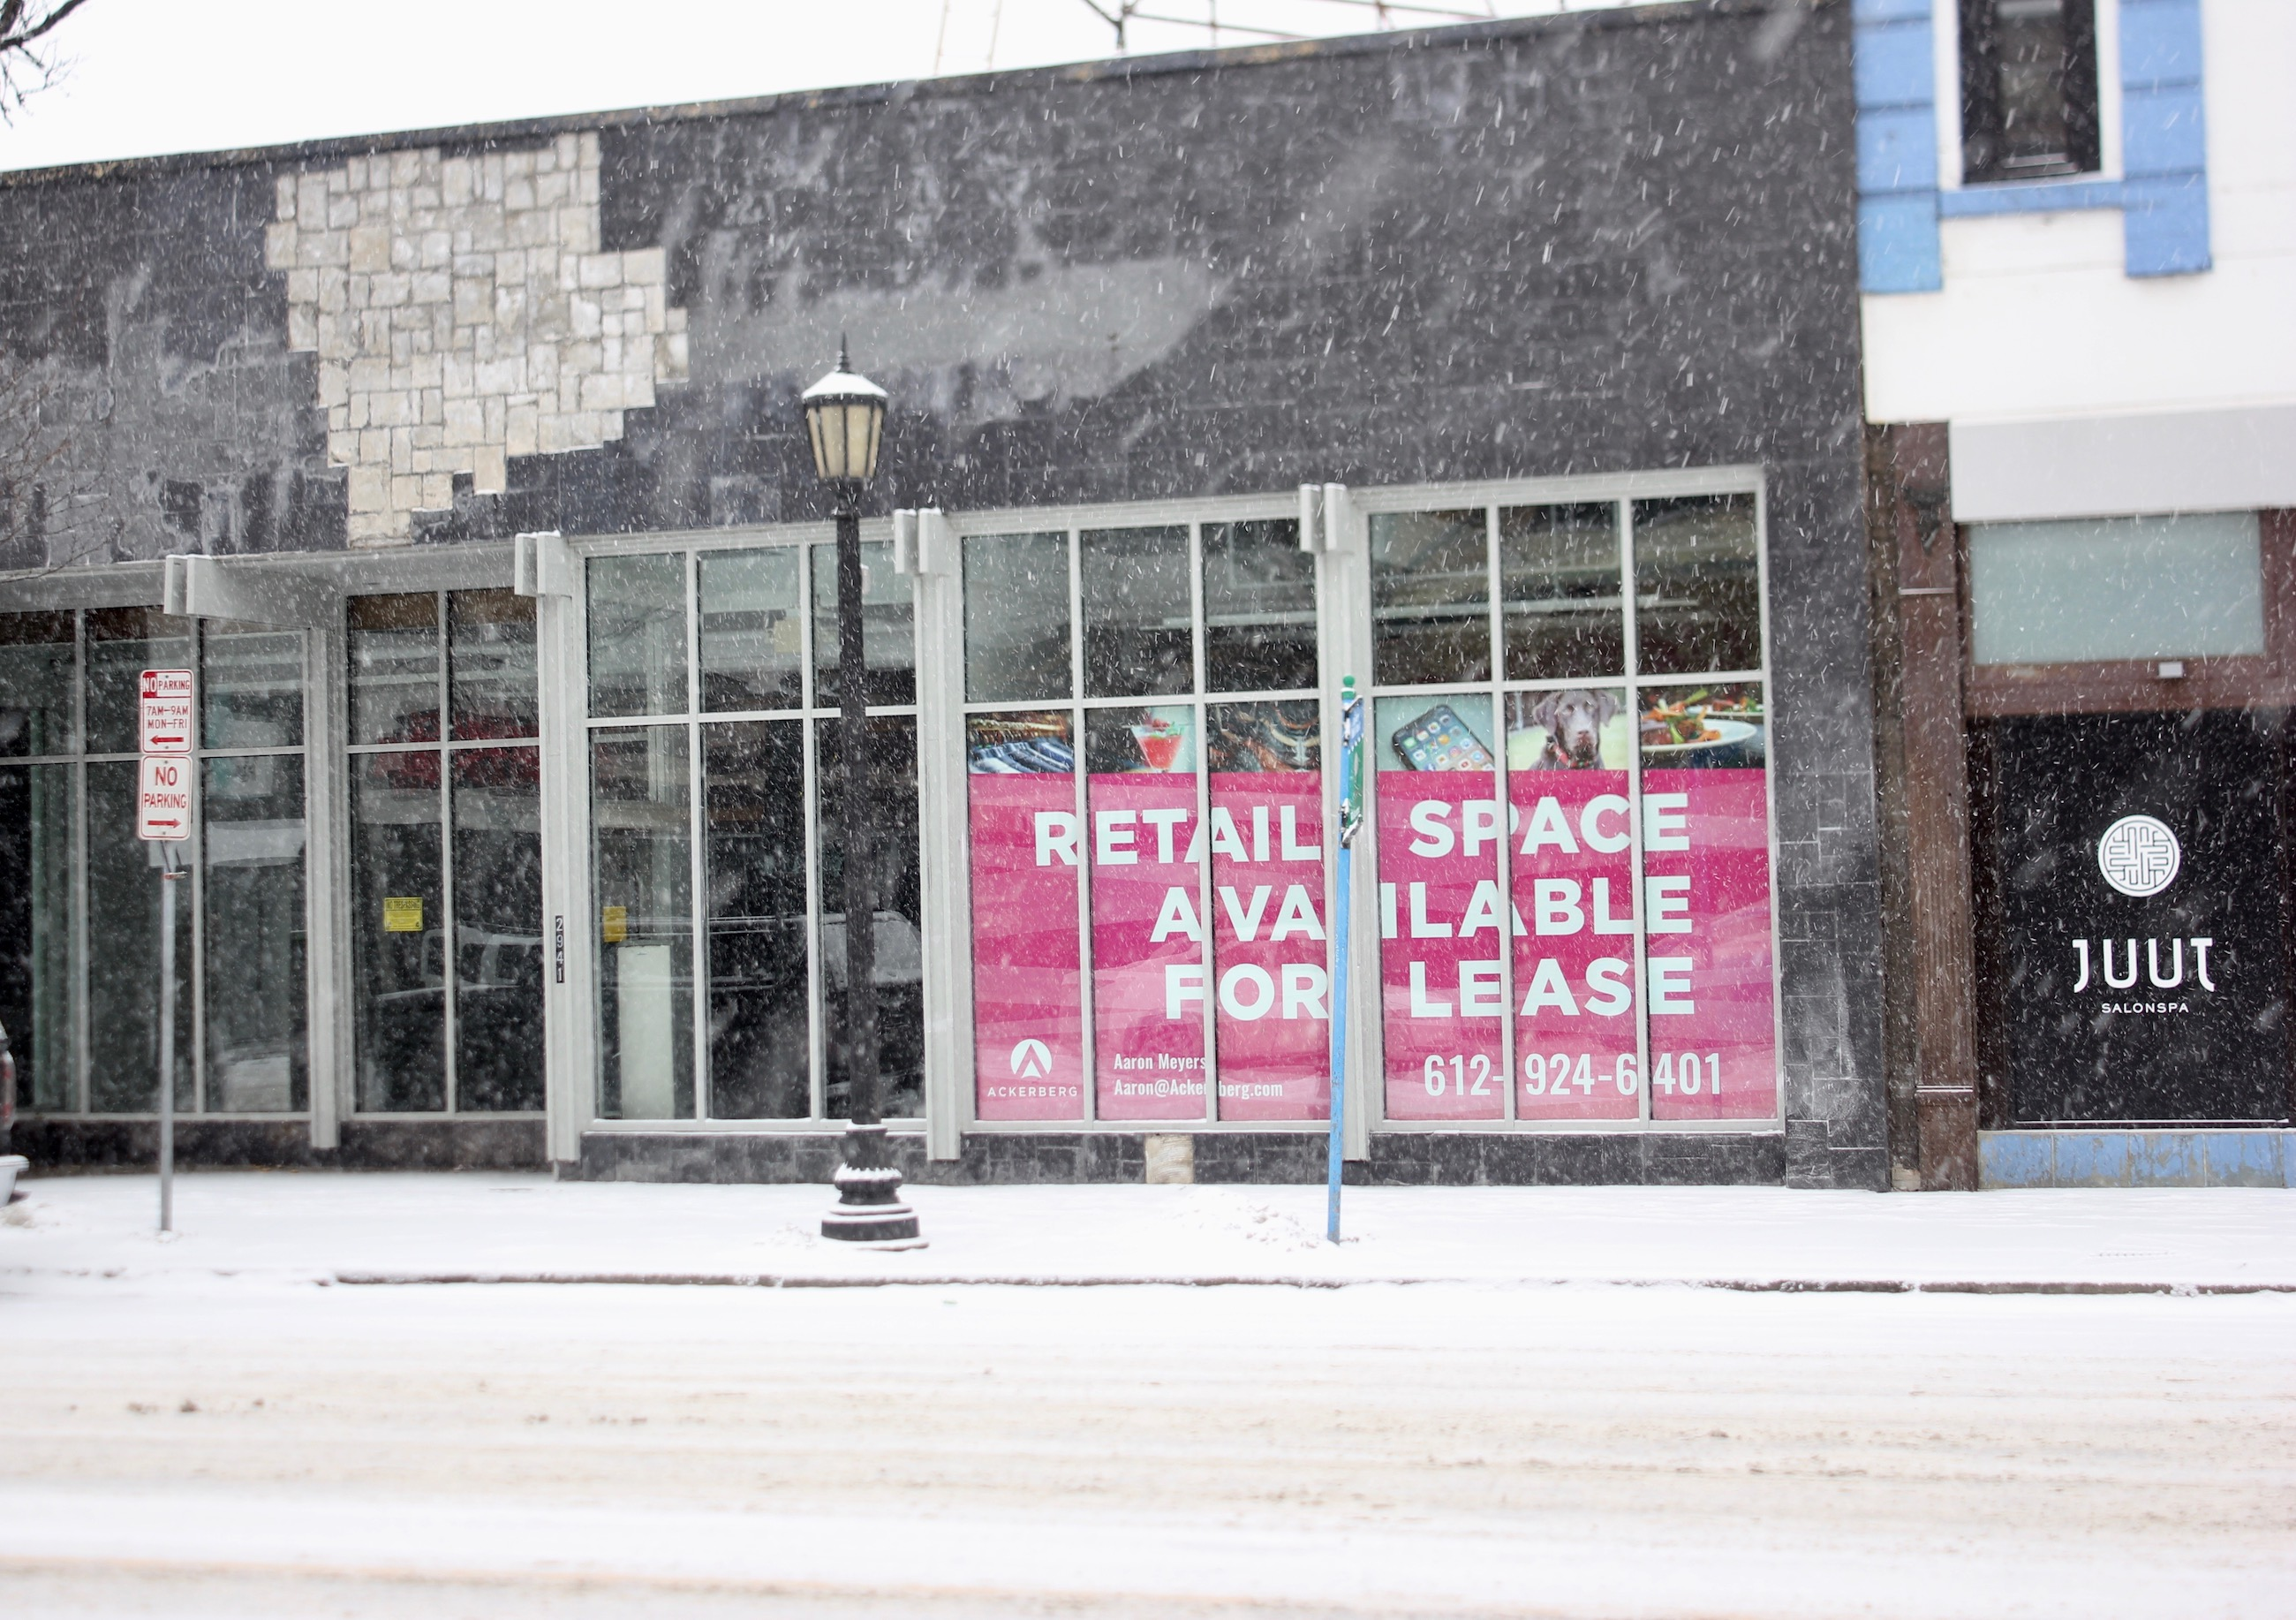 The former Heartbreaker space at 2941 Hennepin Avenue has been vacant for nearly two years, one of several retail vacancies in Uptown. Photo by Andrew Hazzard.